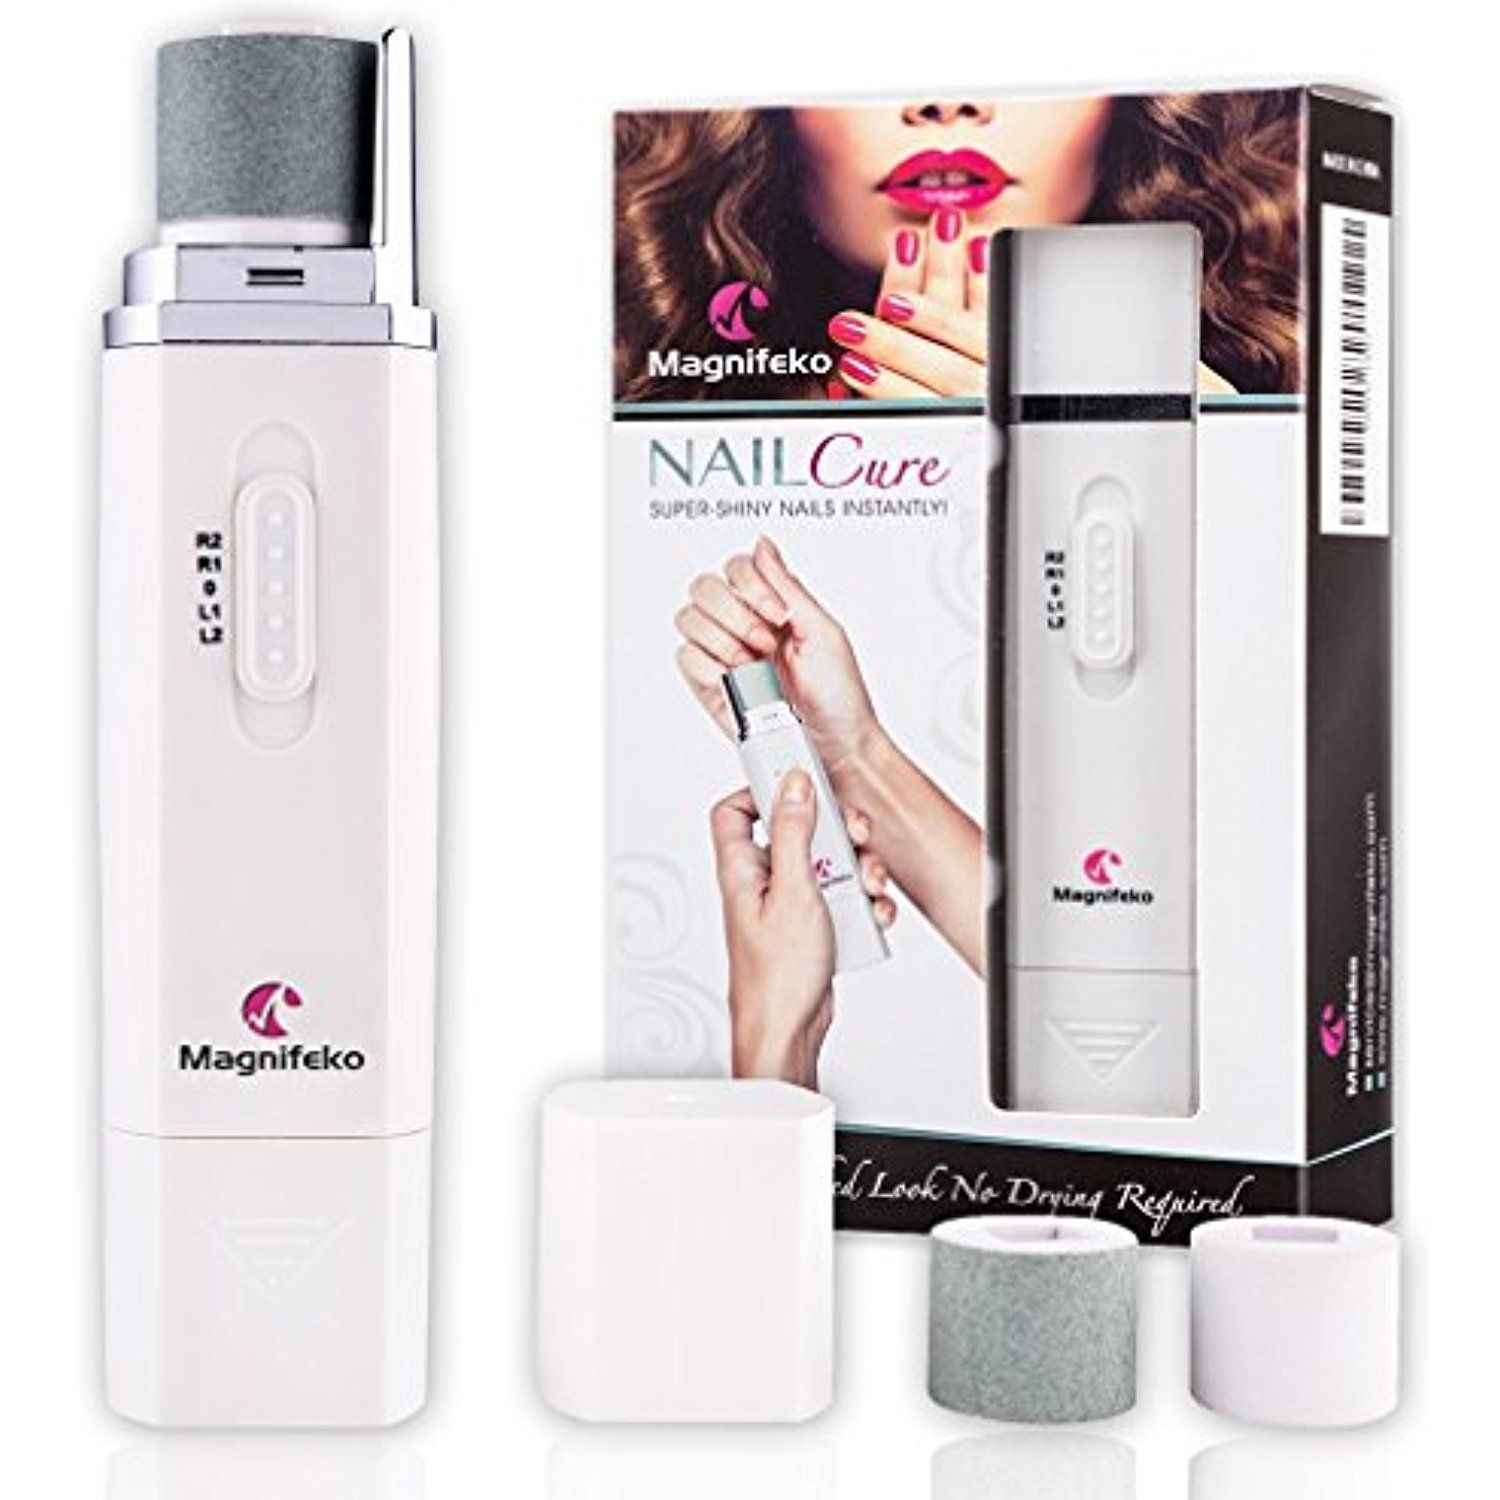 Magnifeko Electronic Manicure and Pedicure Kit Nail Care >>> You can ...